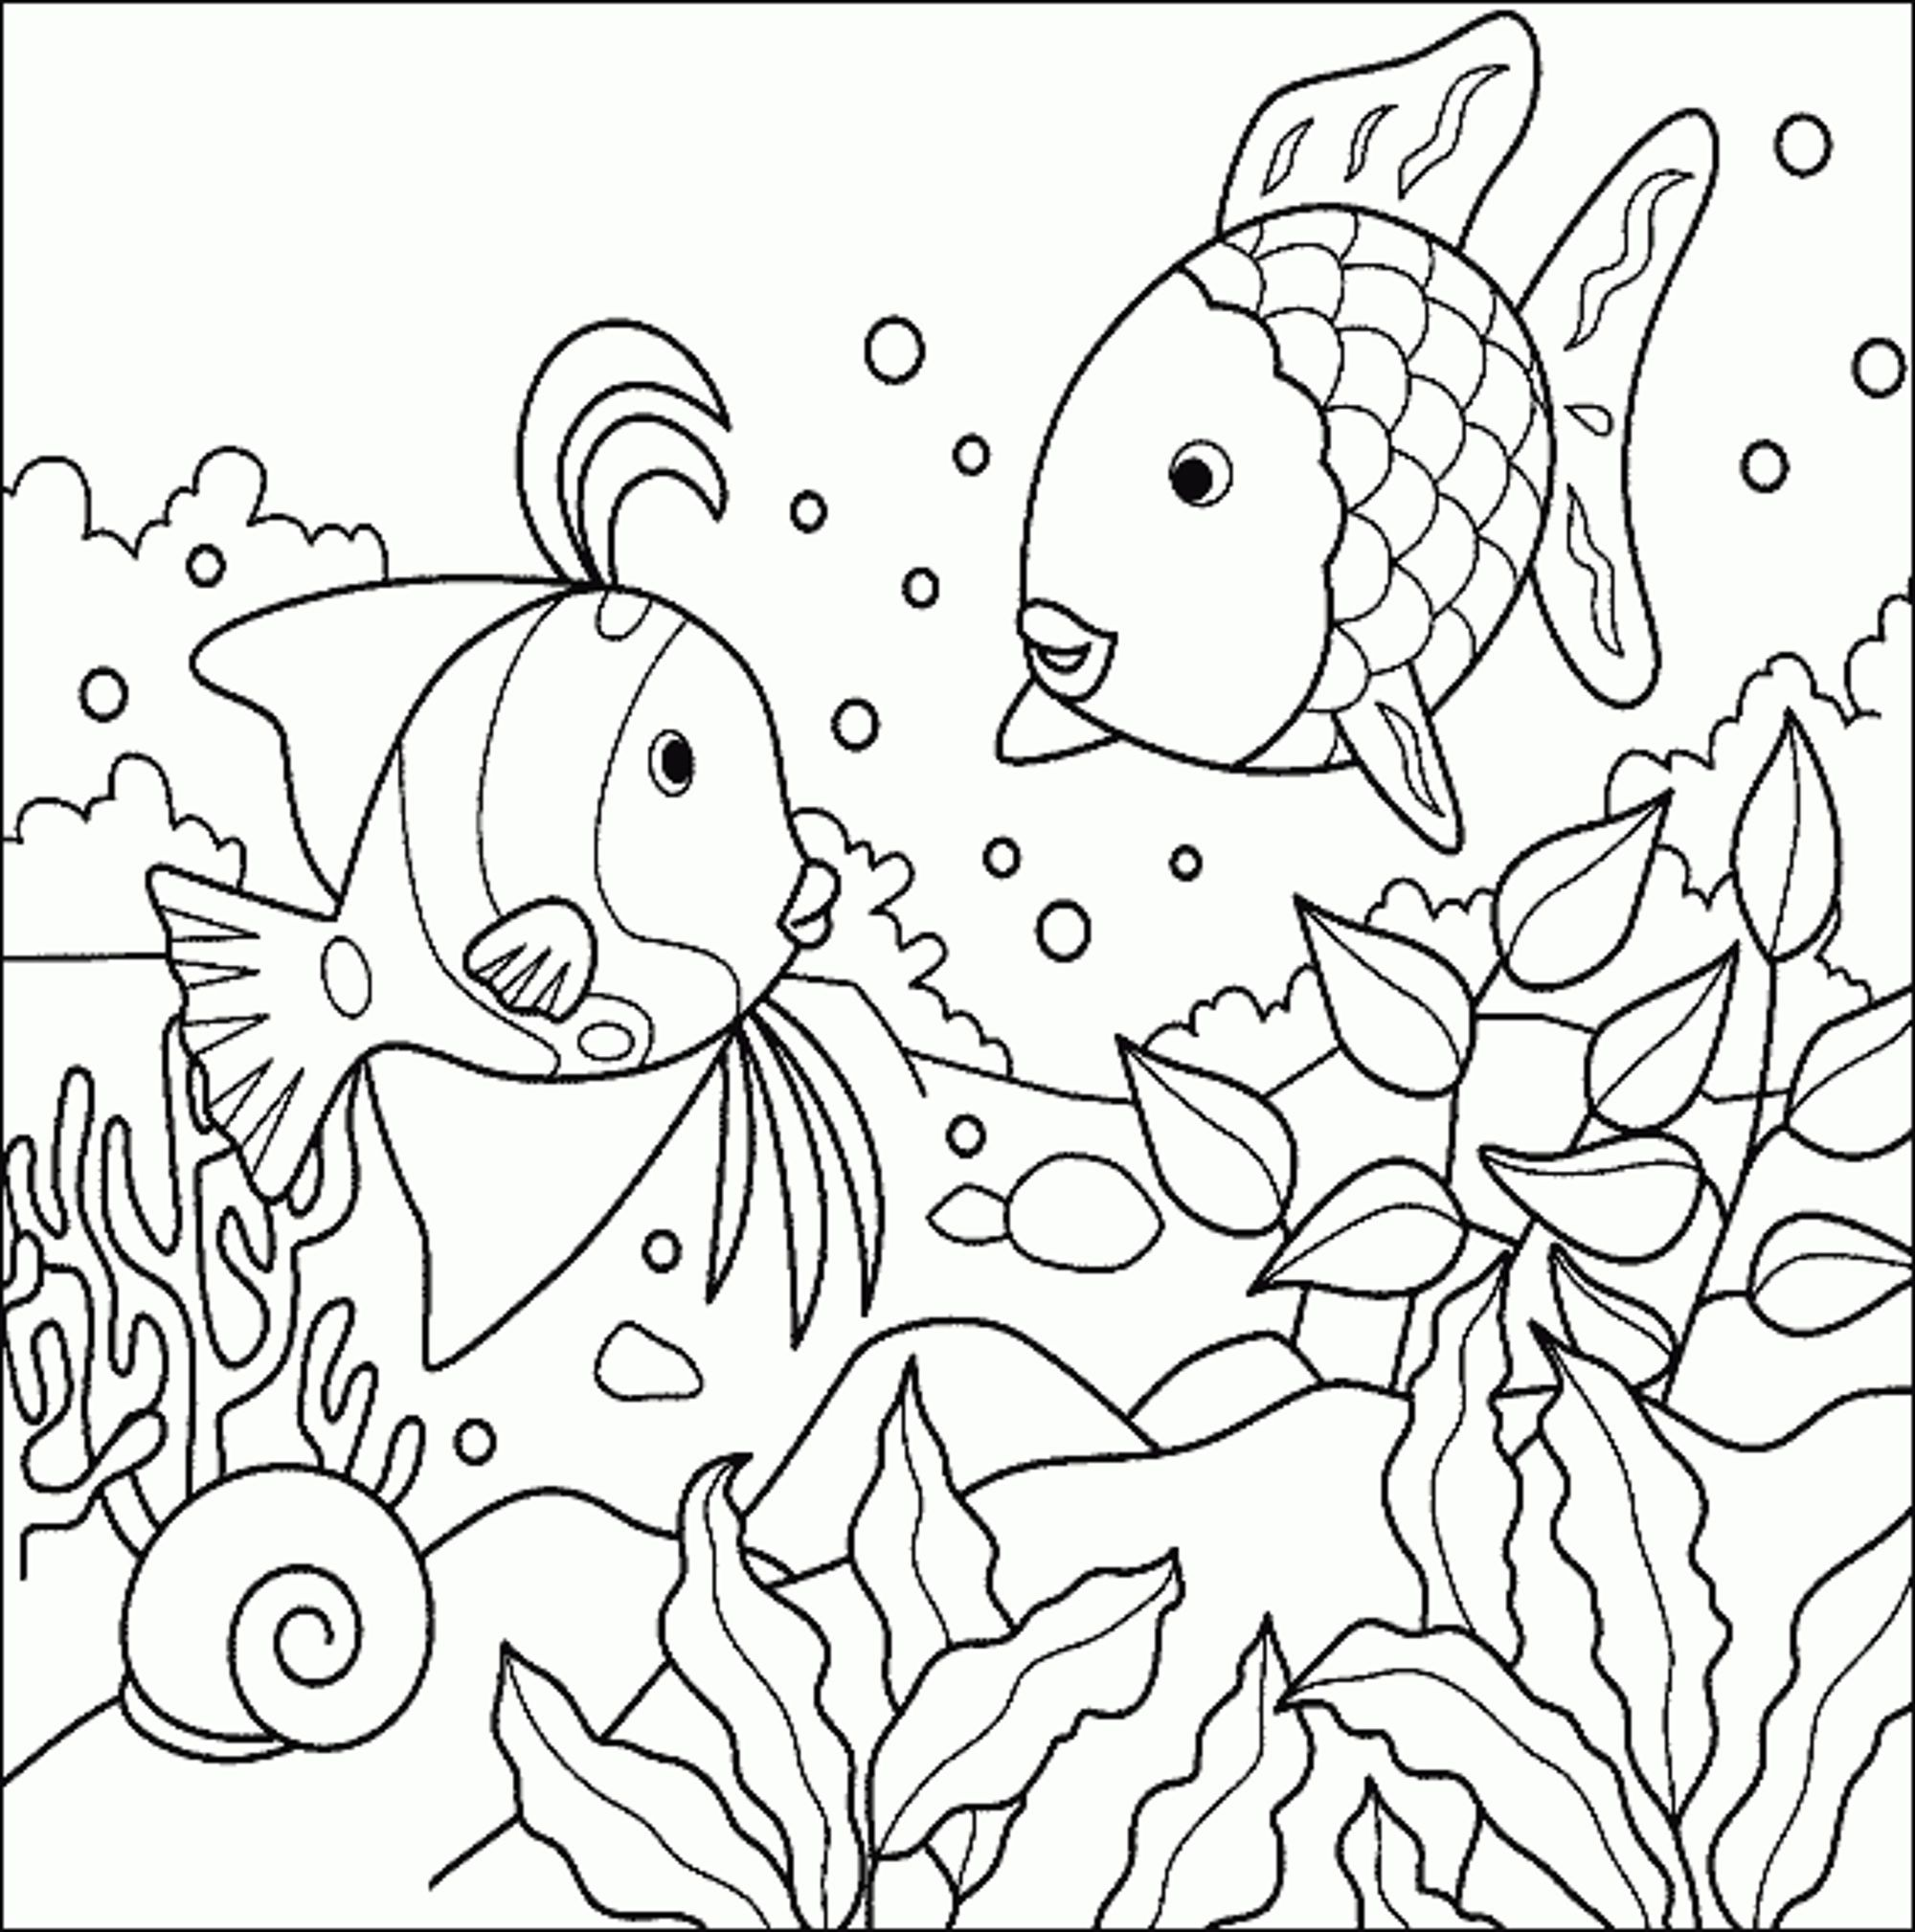 Best Photos of Tropical Fish Coloring Pages Free - Realistic Fish ...